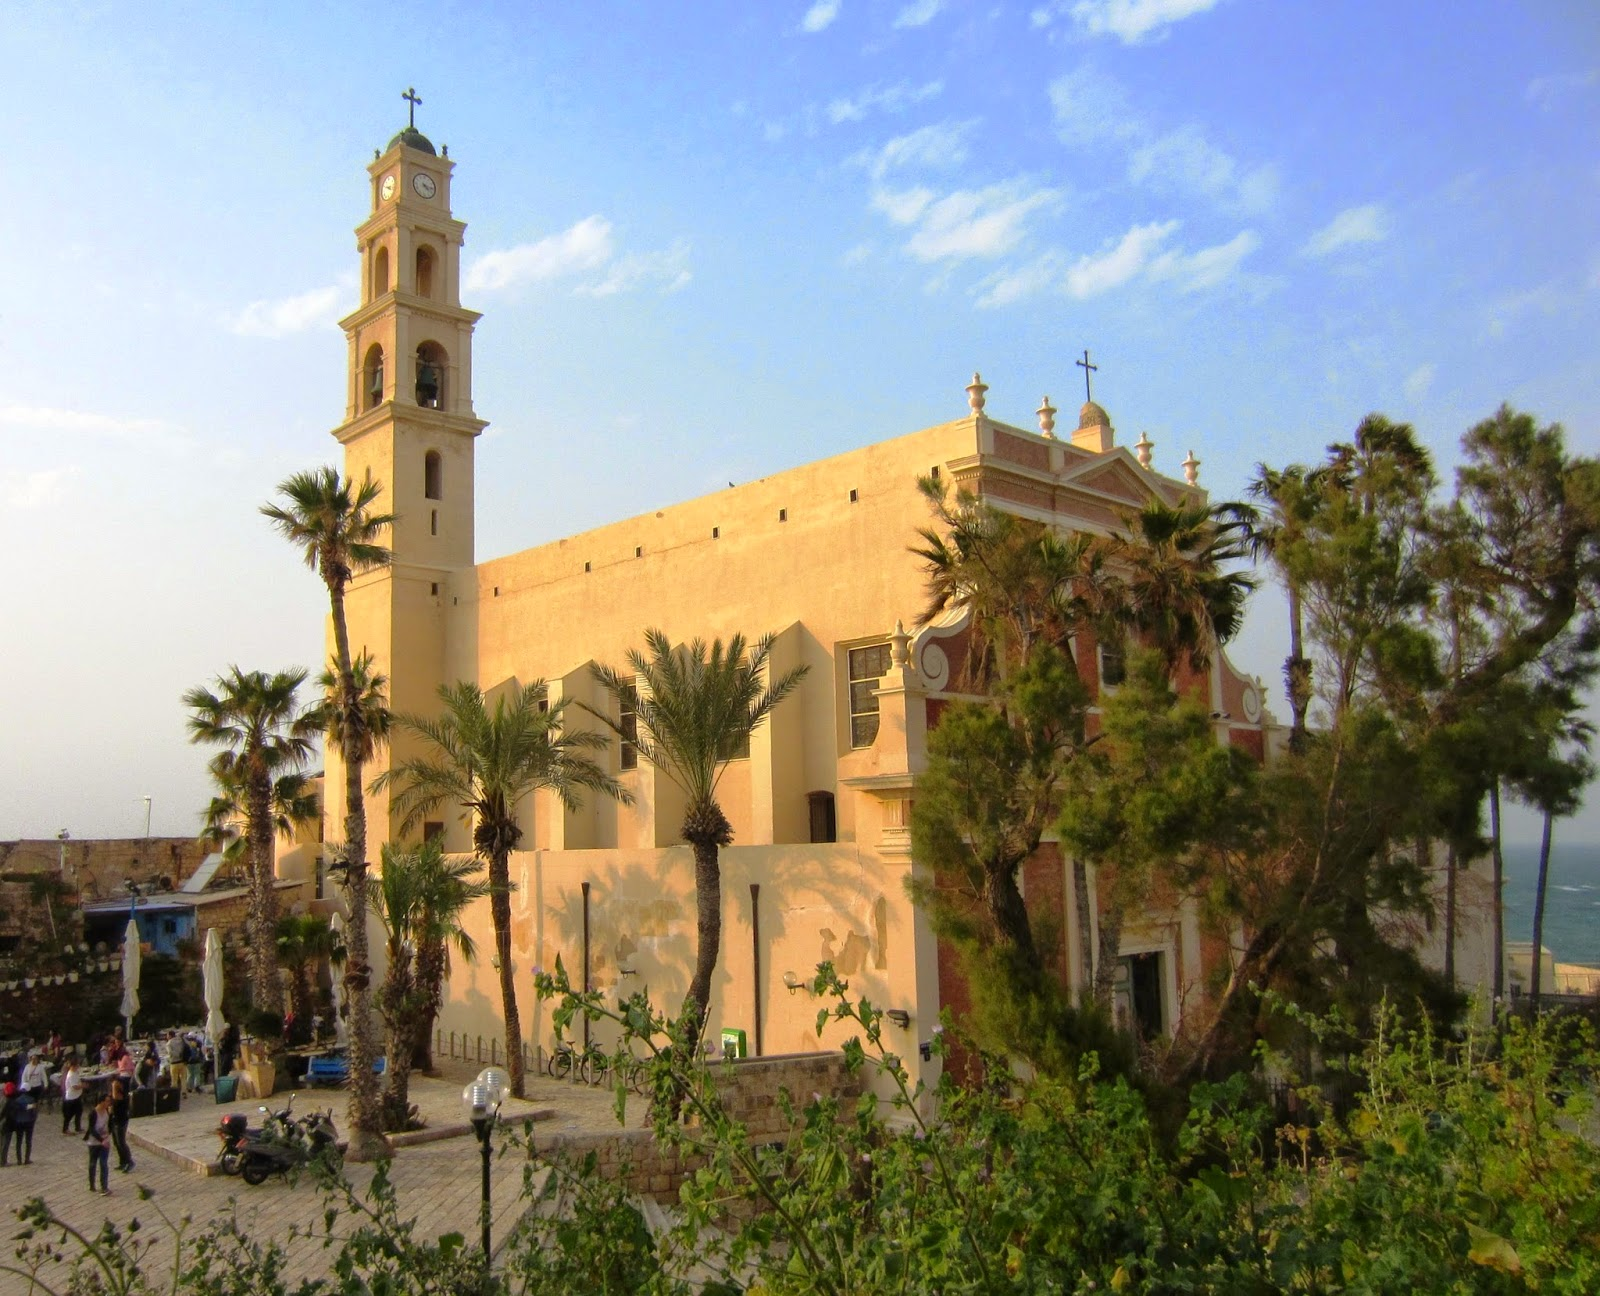 Church of St. Peter, Jaffa, Israel